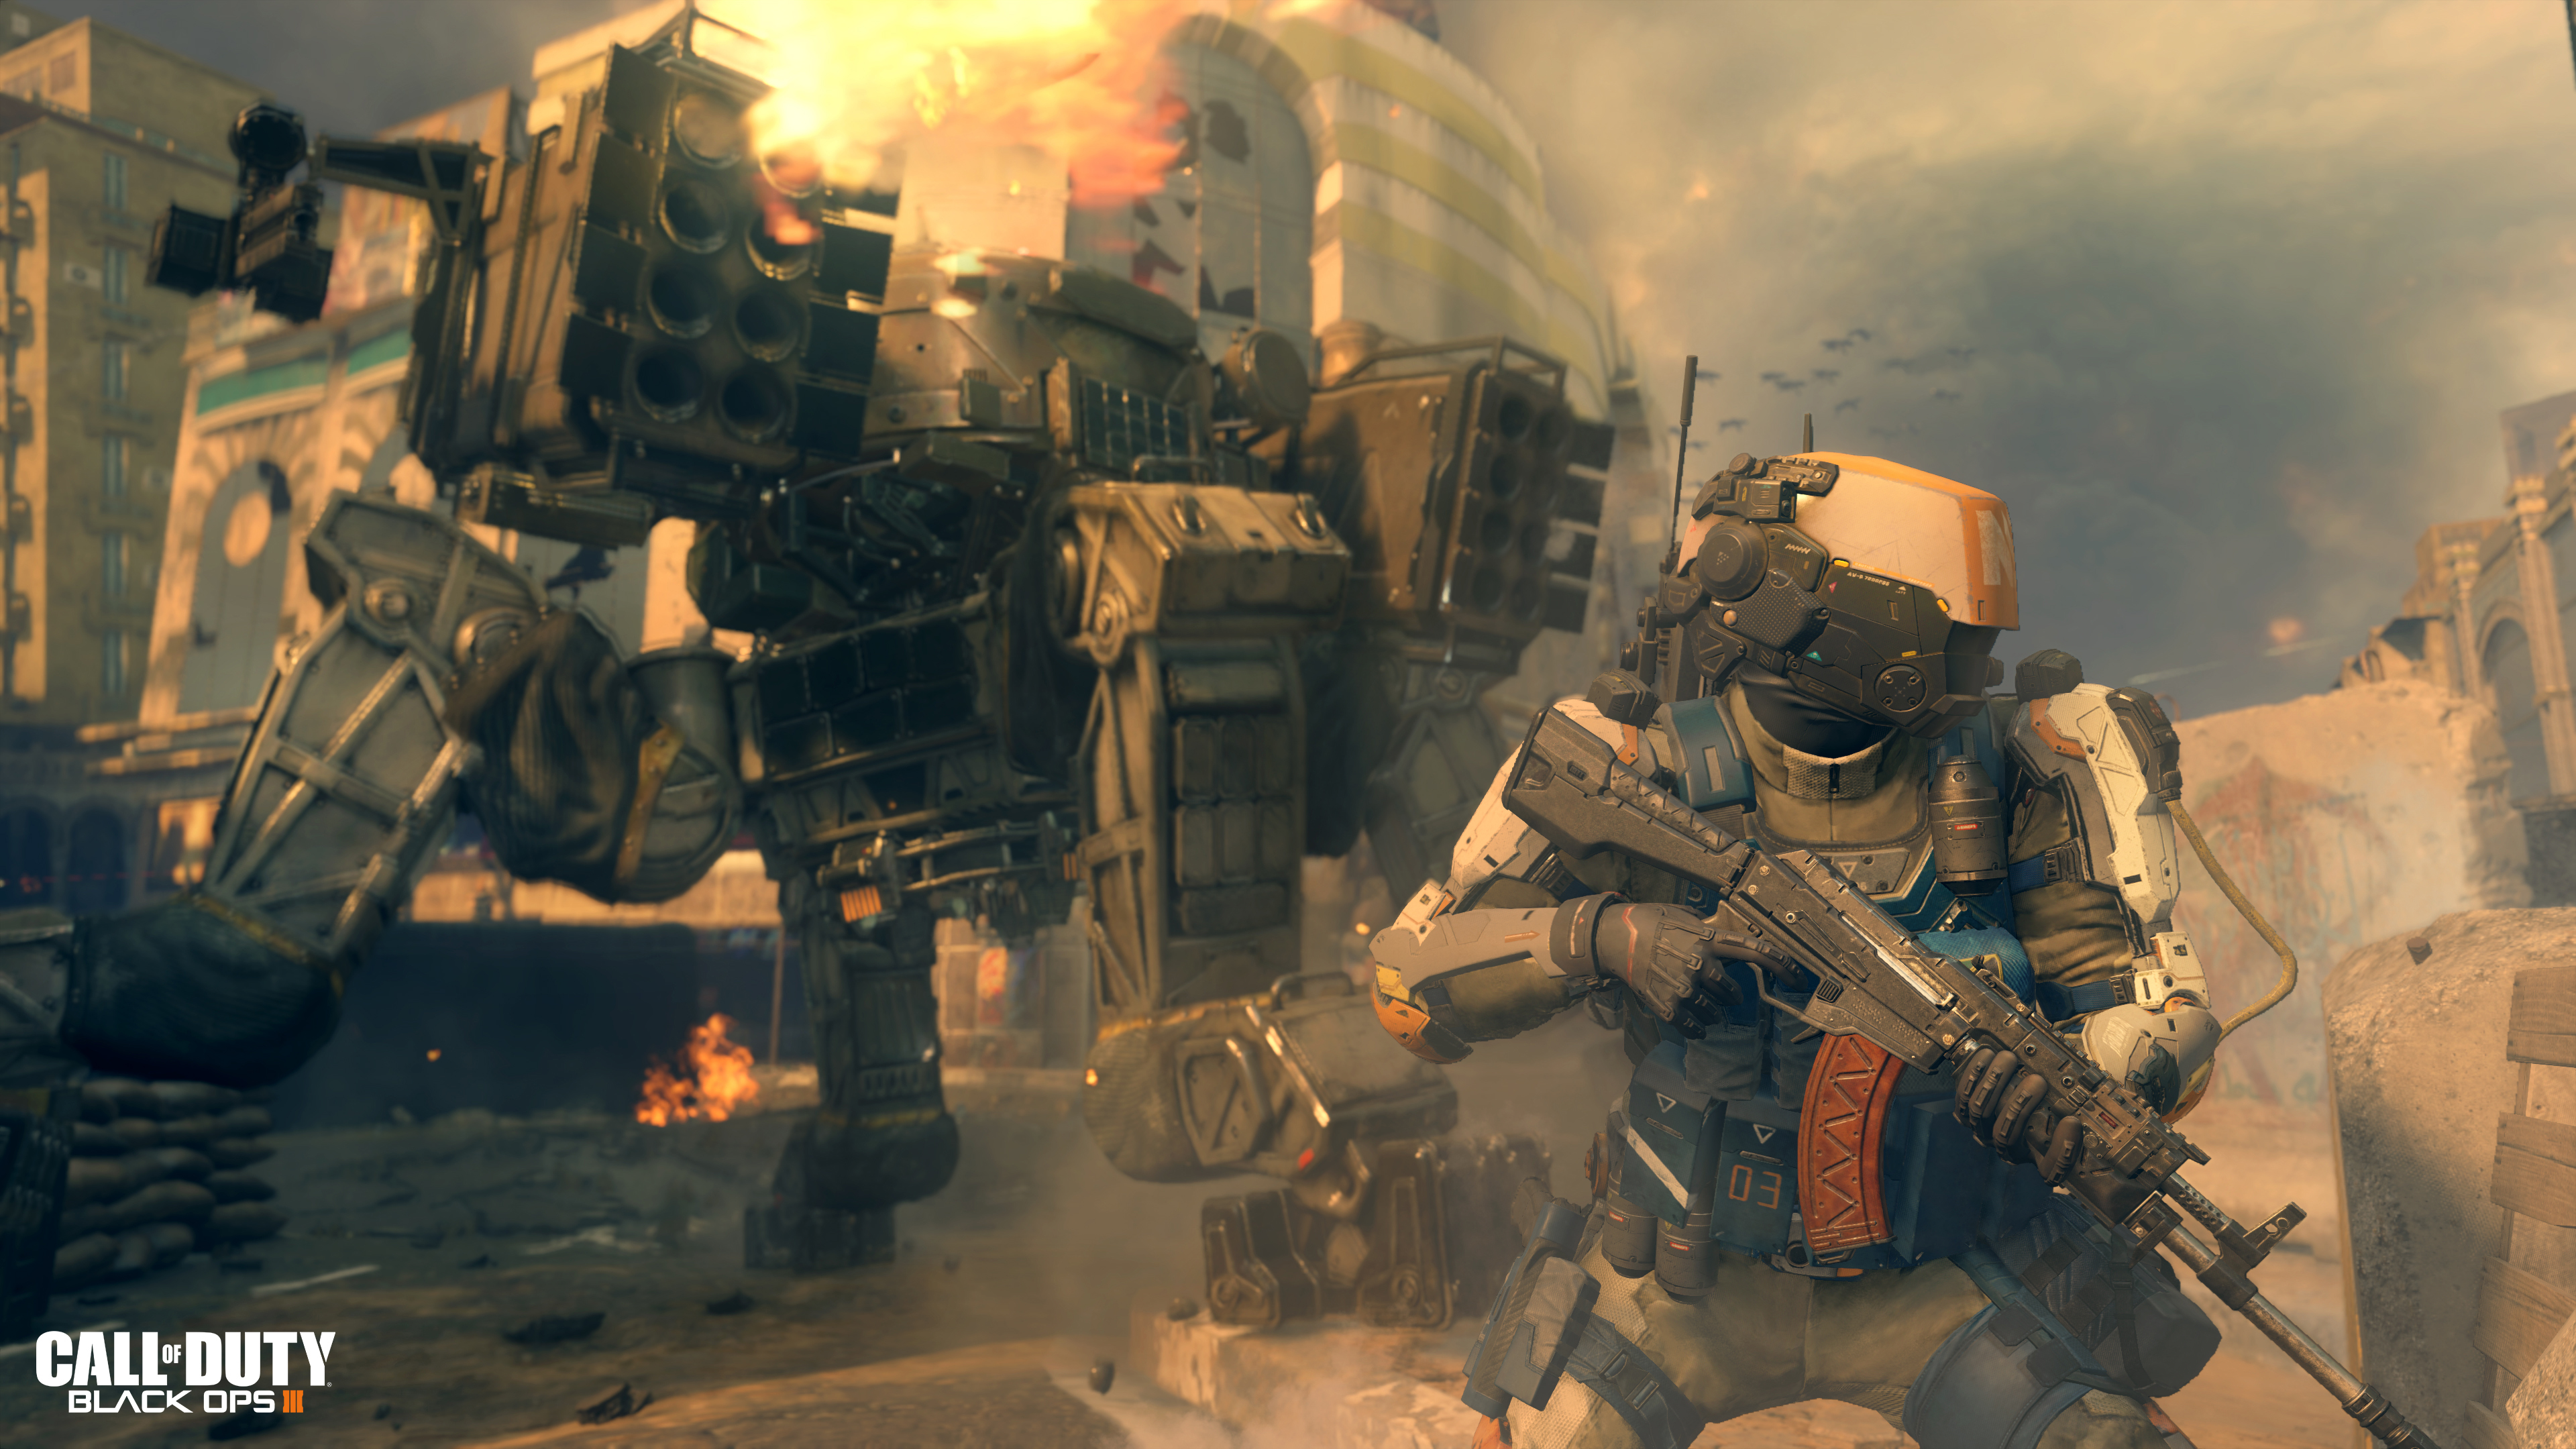 Call Of Duty Black Ops Iii S Single Player Campaign Takes You